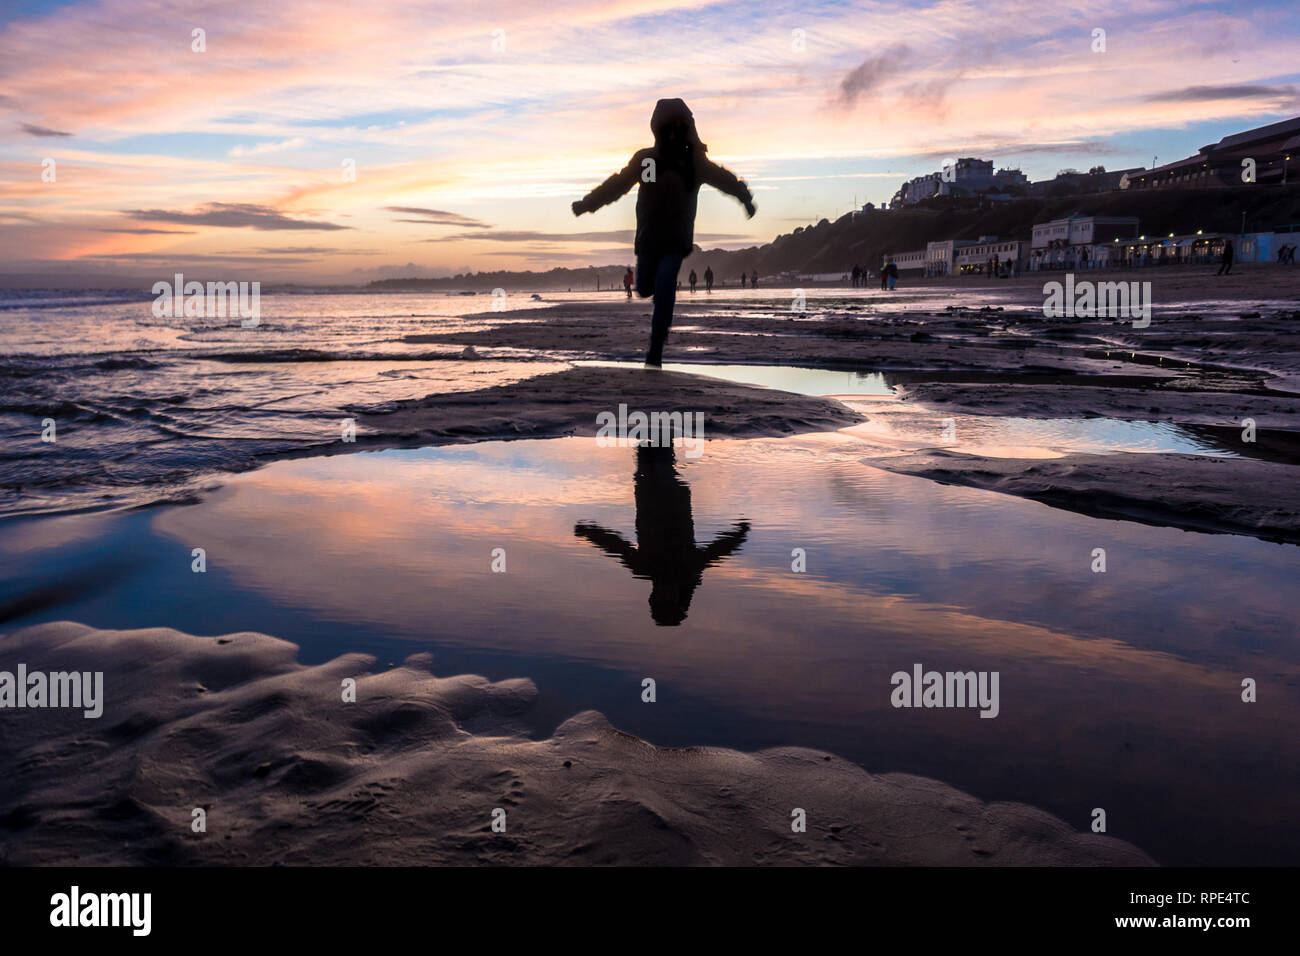 bright-orange-sunset-at-the-beach-at-bournemouth-as-a-young-boy-runs-and-jumps-over-pools-of-water-left-in-the-sand-RPE4TC.jpg